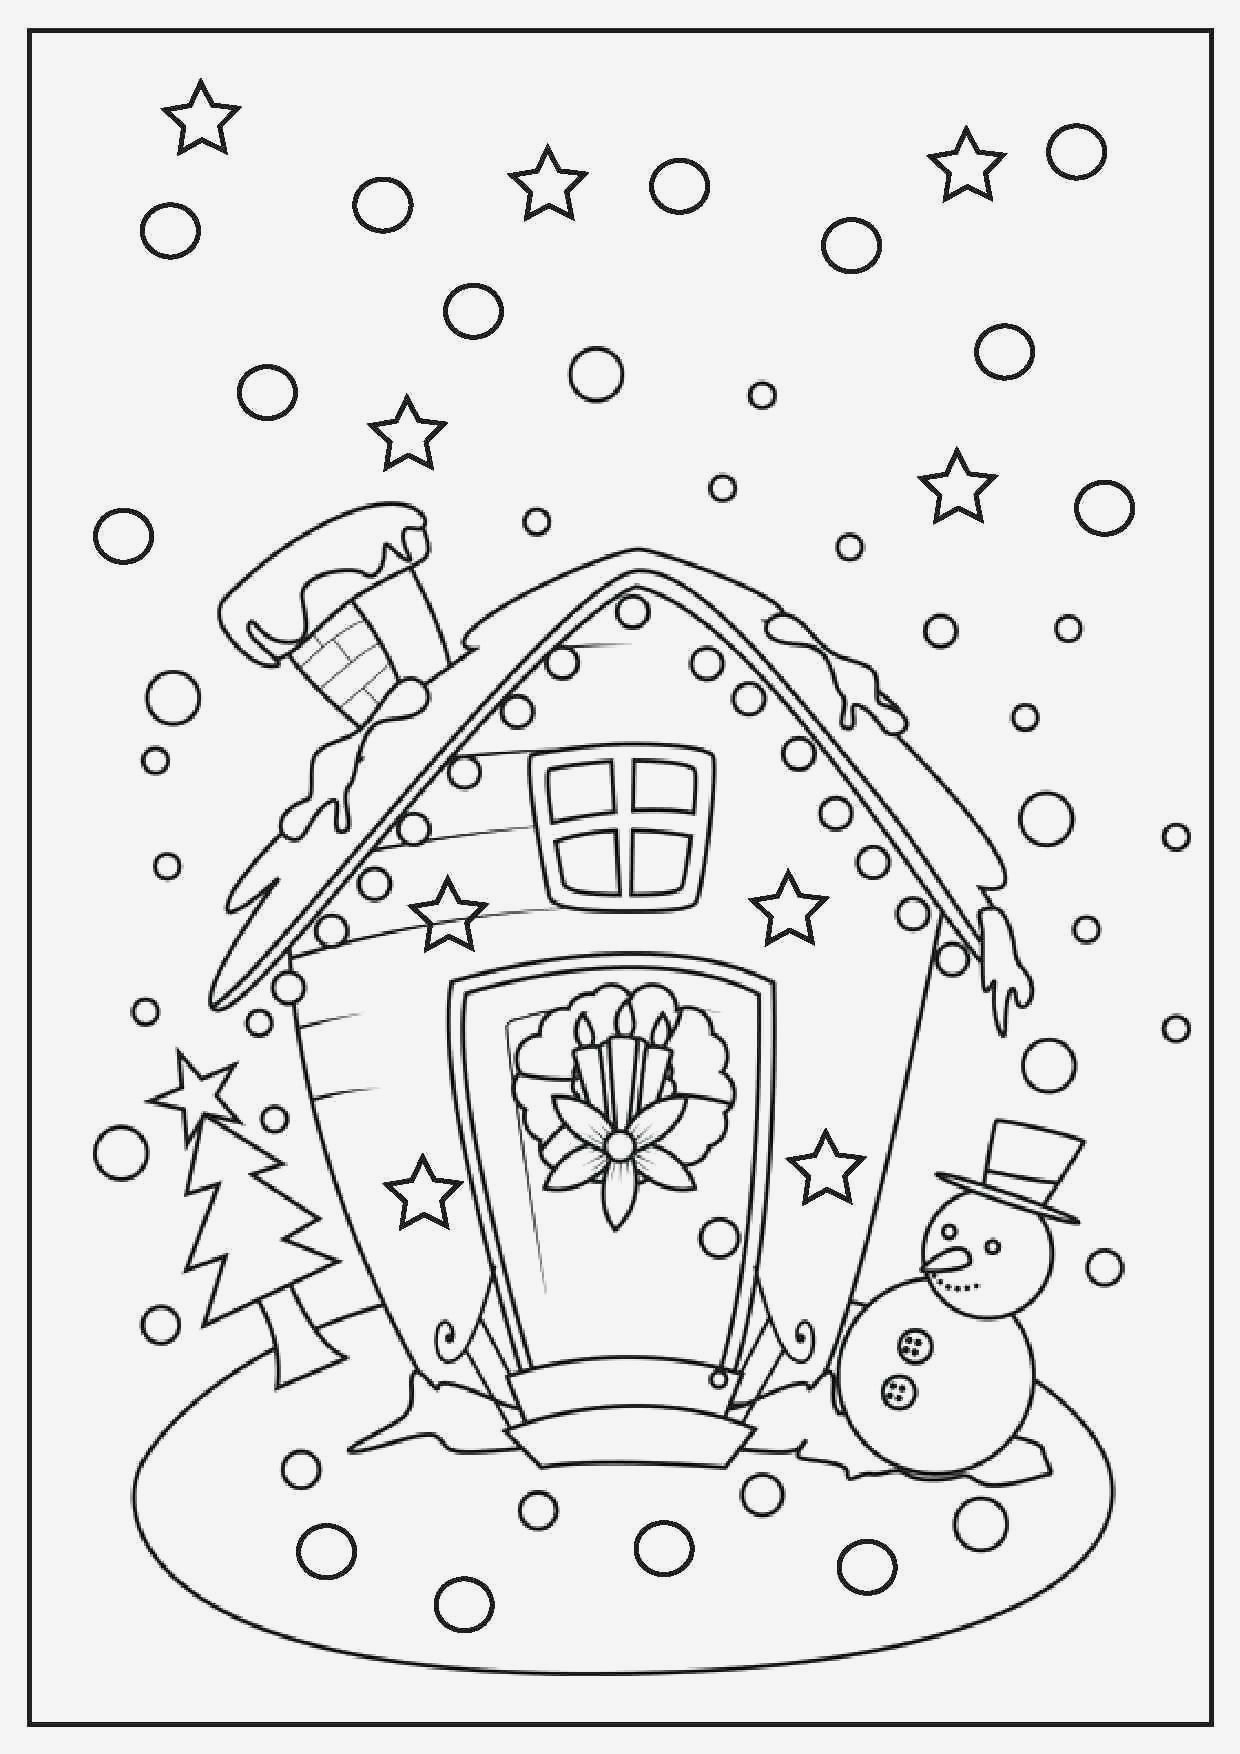 coloring pages bookmarks Download-Parrot Coloring Pages top Free Printable Christmas Coloring Pages Animals Parrot Coloring Pages Free Coloring 13-m